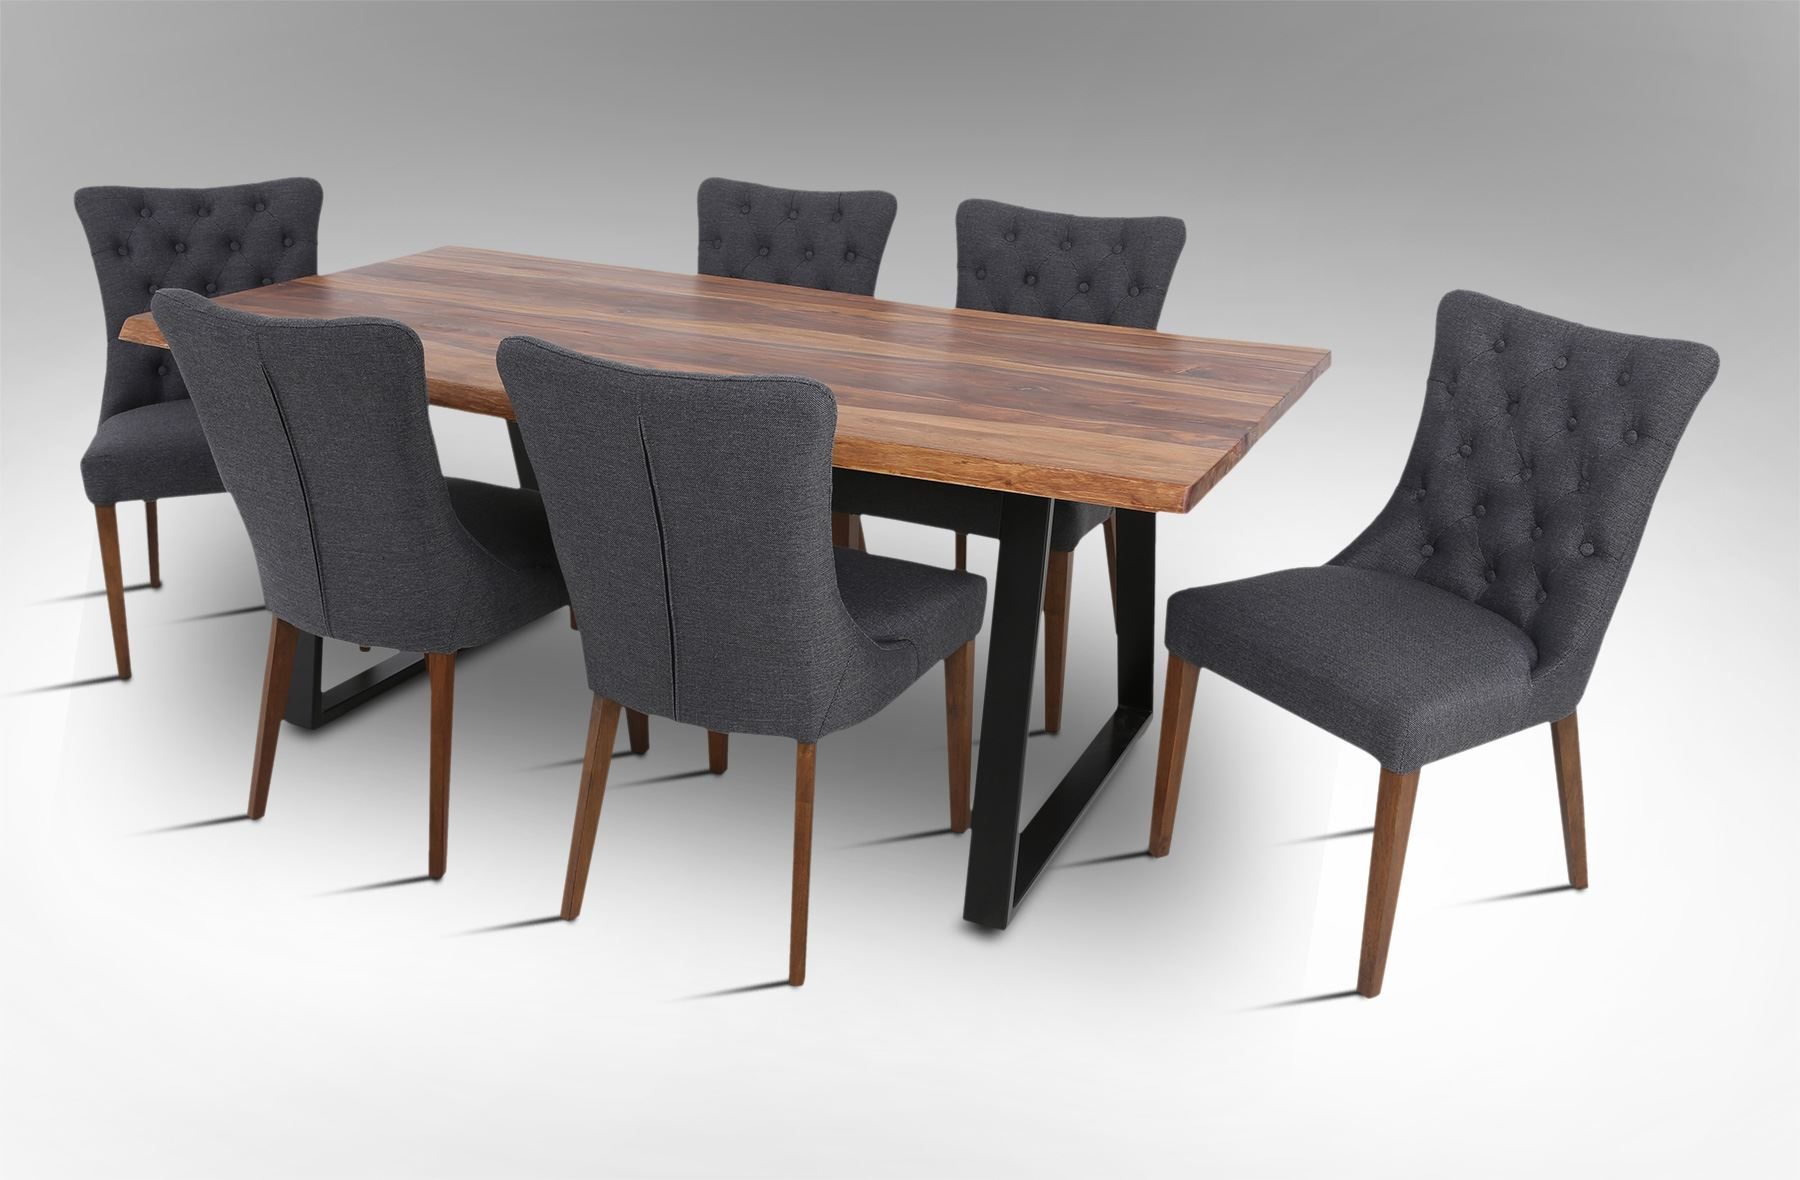 Rice Furniture Rio 2000 Dining Table With 6 Paris Chairs